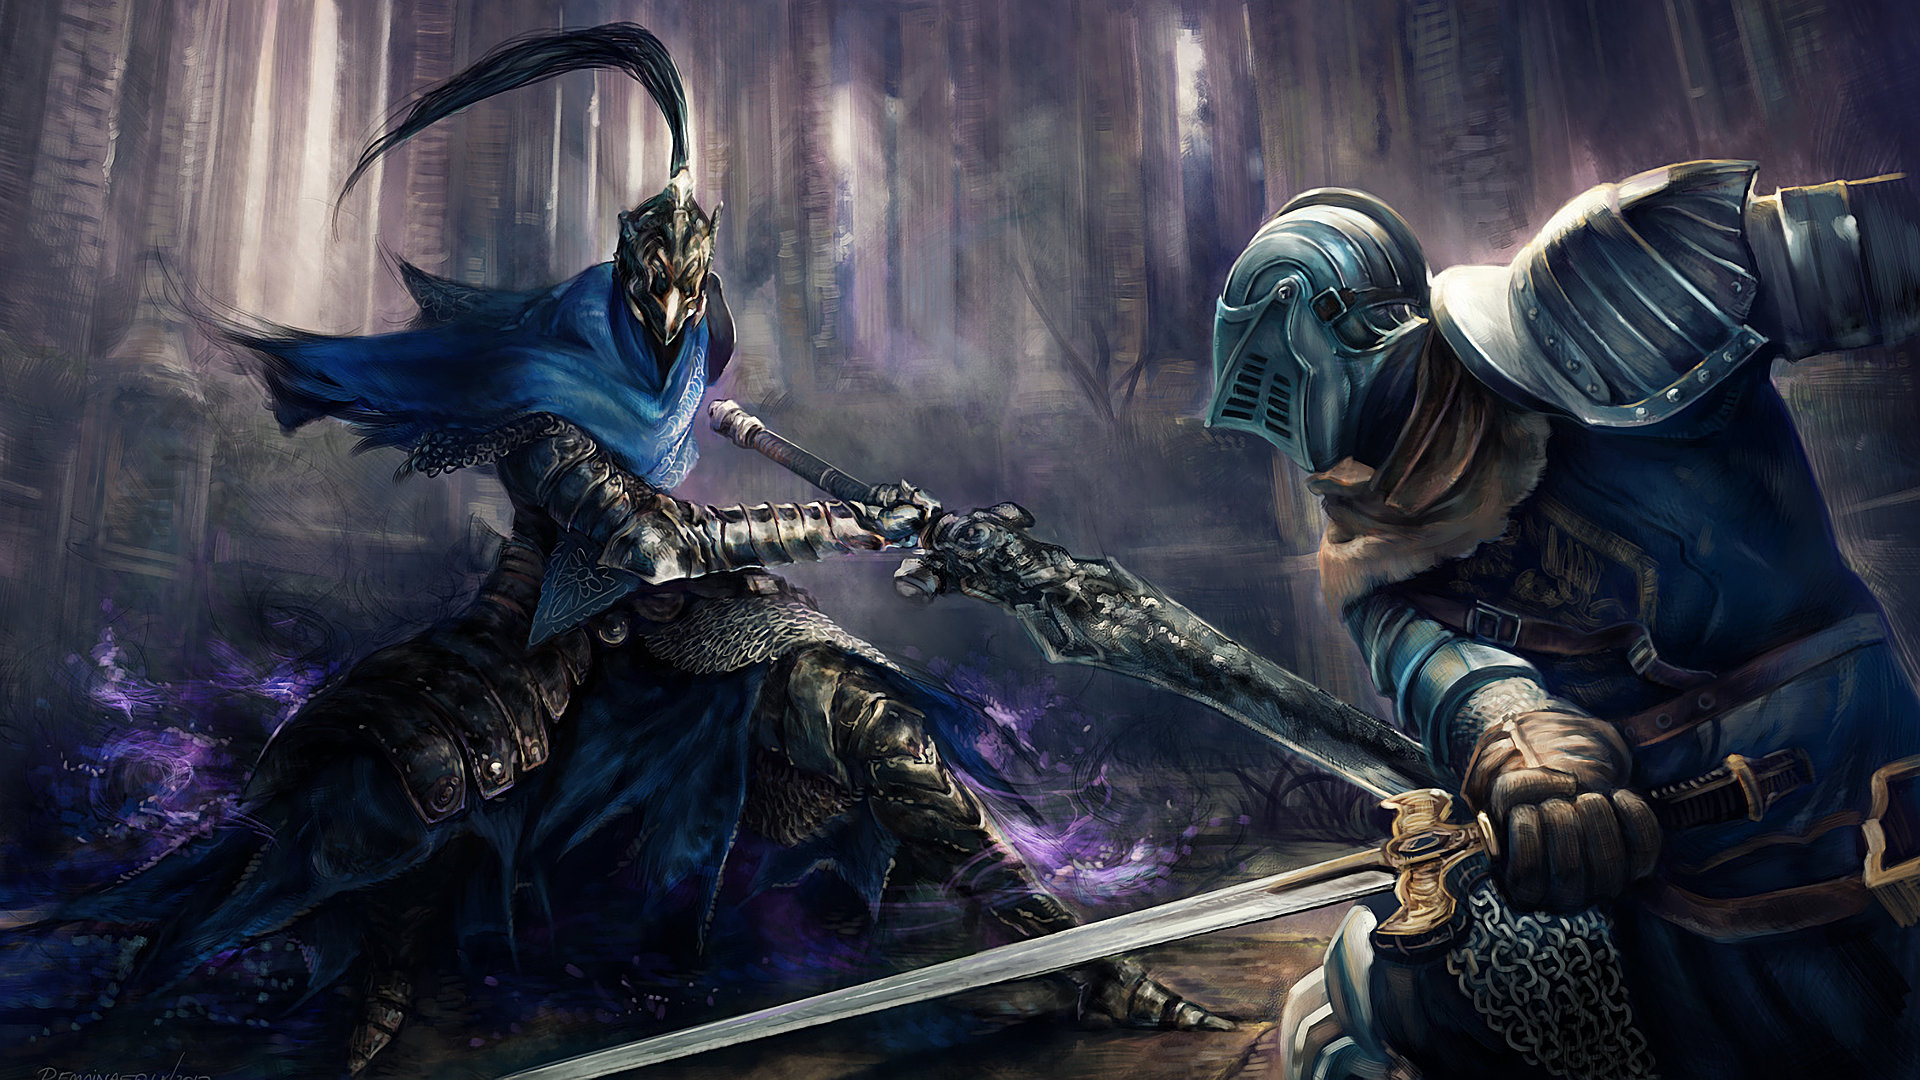 Artorias dark souls wallpapers 1920x1080 full hd 1080p desktop artorias dark souls hd backgrounds for 1920x1080 full hd 1080p desktop voltagebd Images